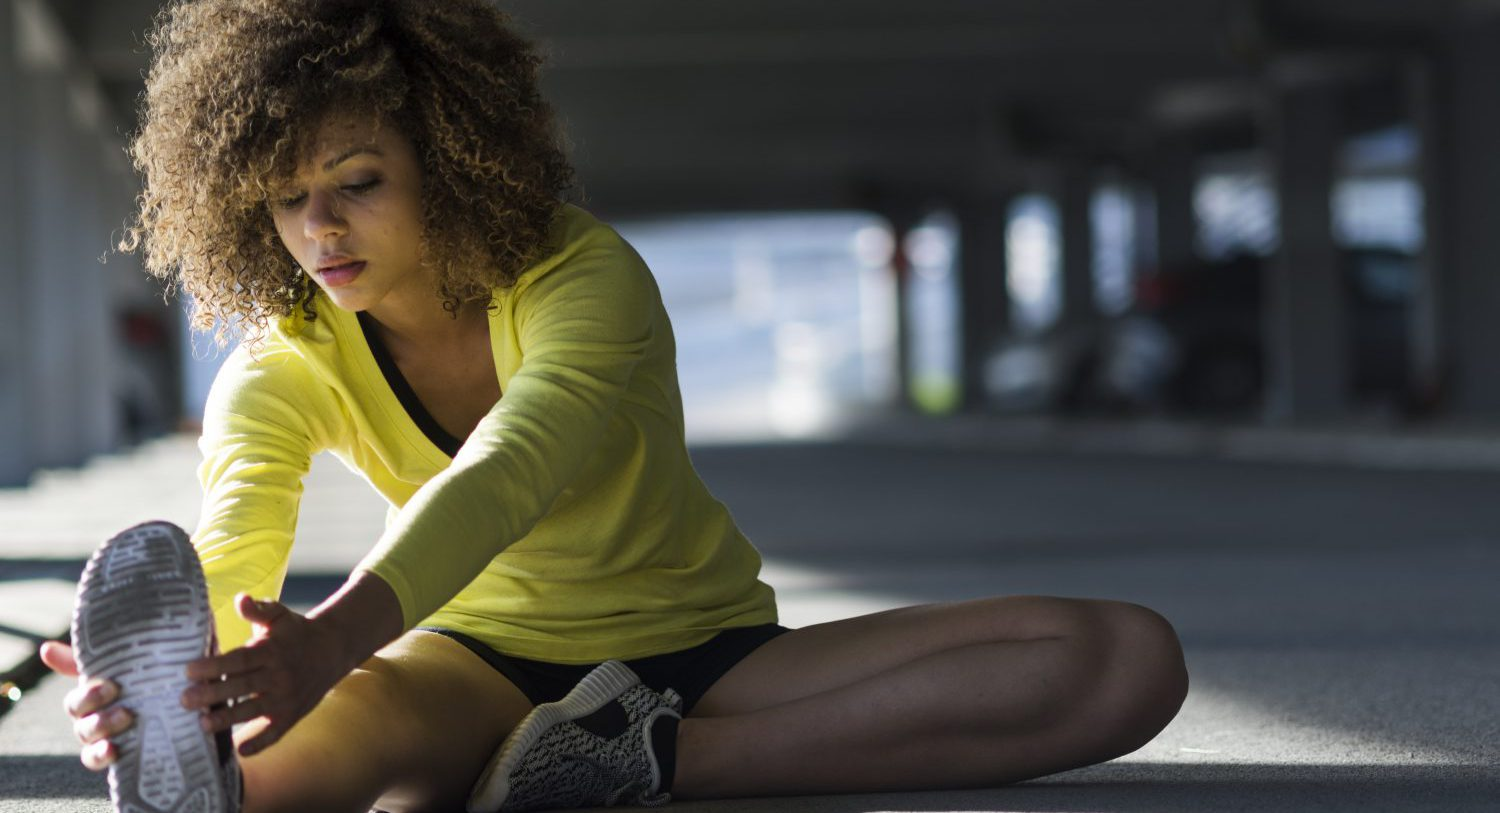 Woman stretching and listening to the music on her headphones